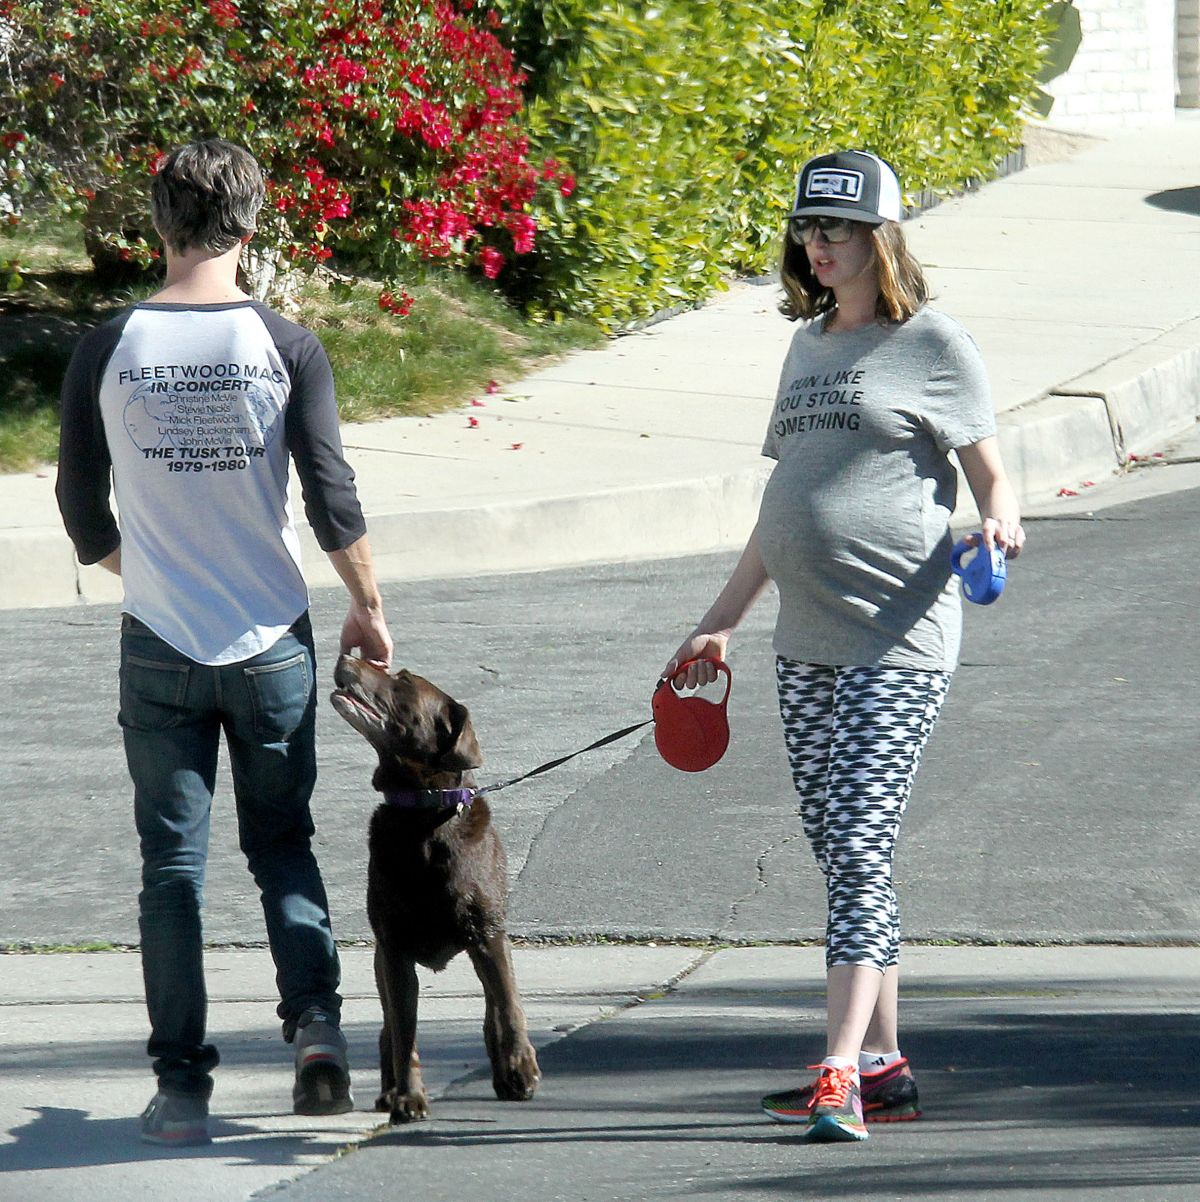 Anne Hathaway Real Name: Pregnant ANNE HATHAWAY Walks Her Dog Out In Los Angeles 02